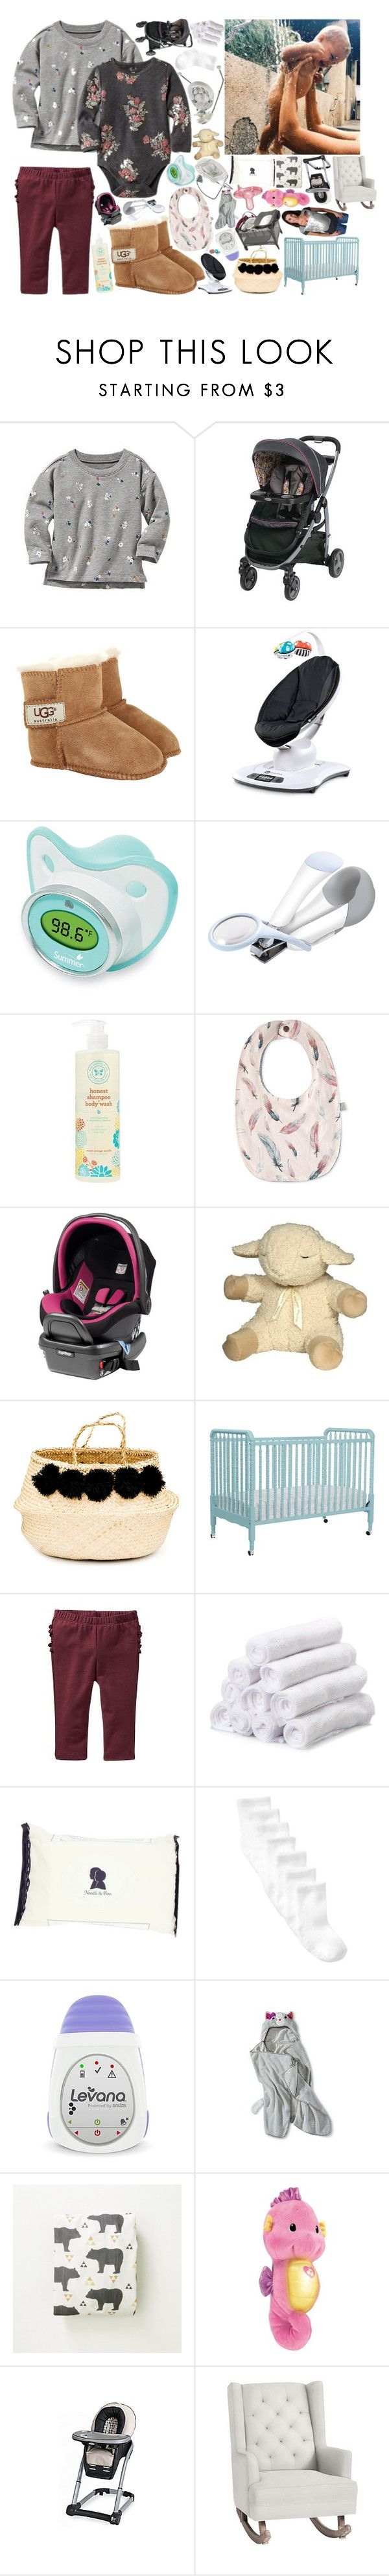 """My Baby's Gonna Be Adorable"" by sbhackney ❤ liked on Polyvore featuring Old Navy, UGG Australia, 4moms, Summer Infant, The First Years, The Honest Company, Fisher Price, Cloud B, Eliza Gran Studio and Noodle & Boo"